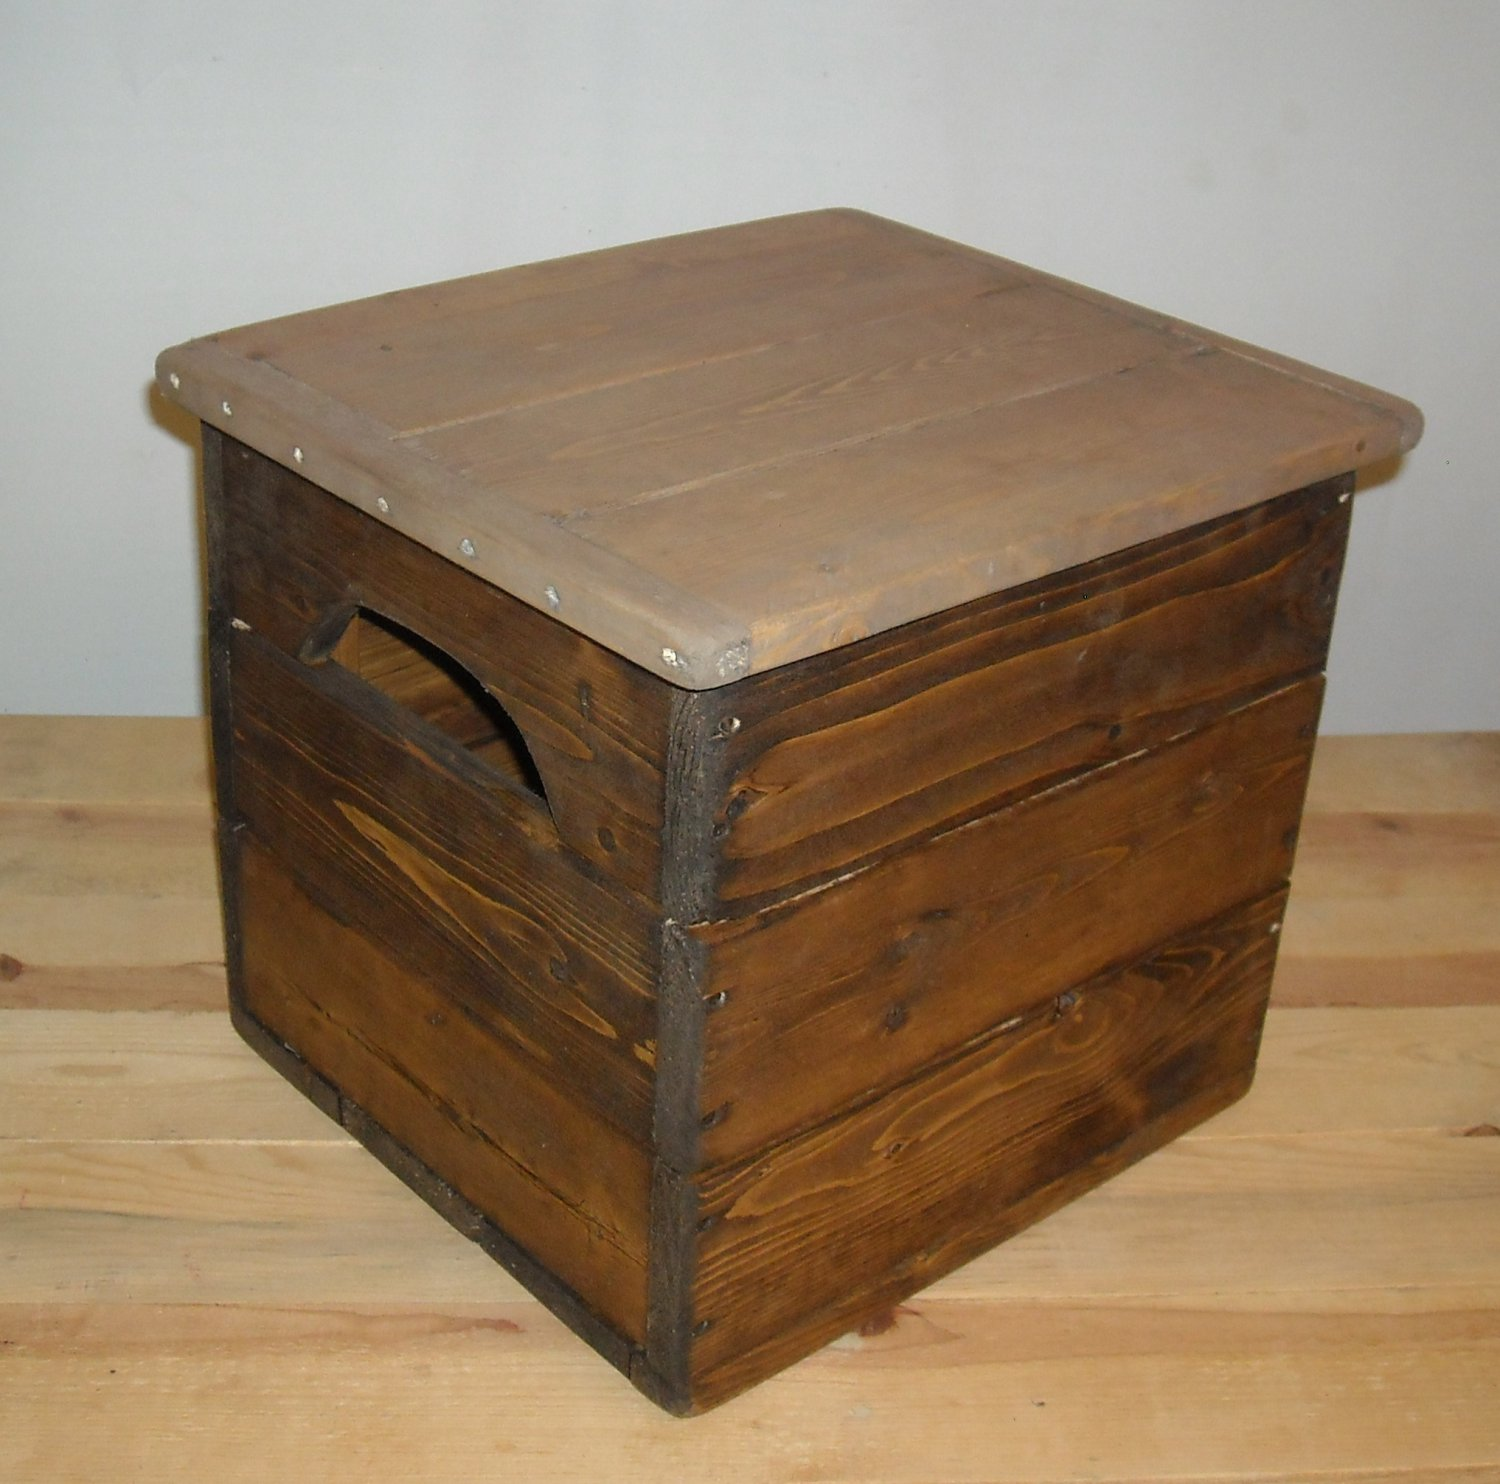 Small Storage Chest ITEM # Small Storage Chest ITEM # $ Reg. $ 25% off Unfinished Wood - Online Only Deal QTY ADD TO MY BAG PERSONALIZE IT. Please enter a value greater than 1 Please enter a value less than item(s) in stock.